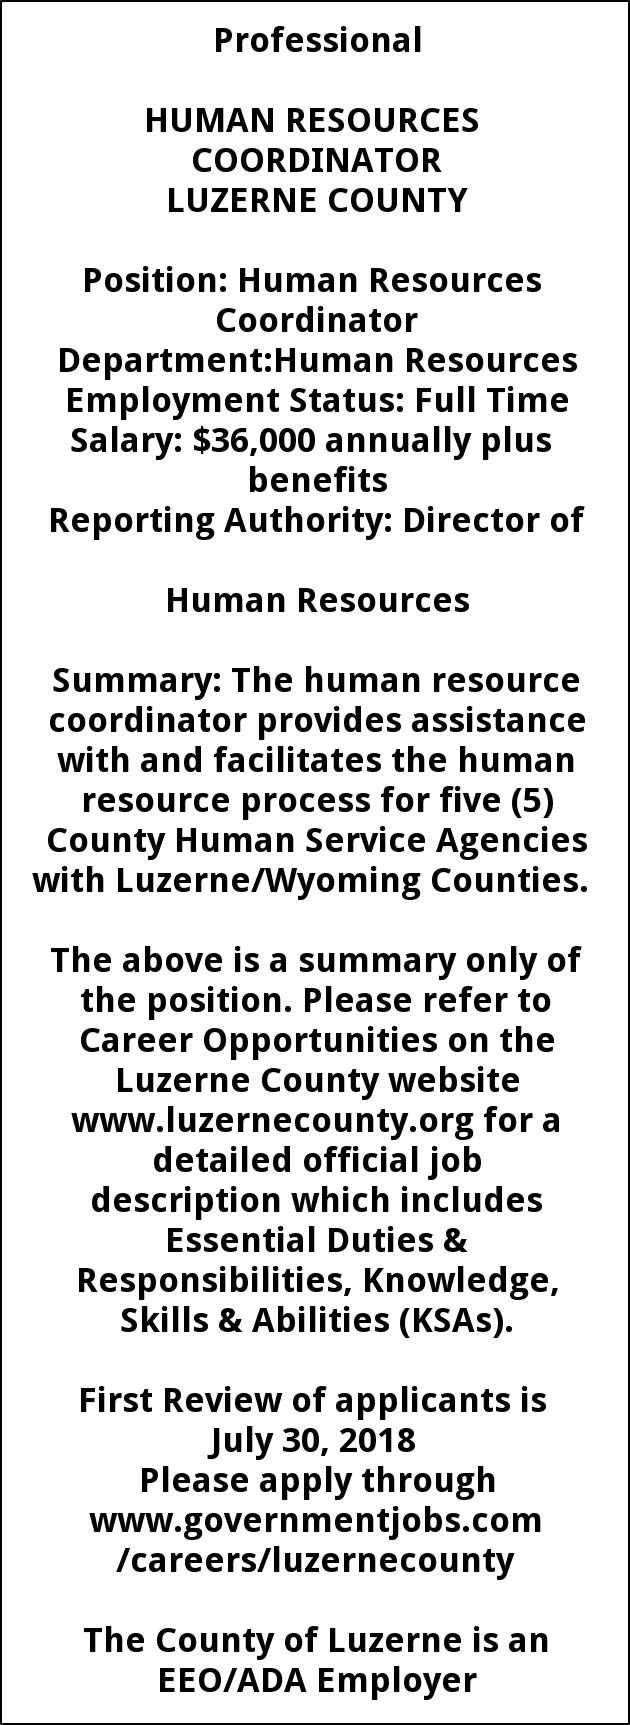 HR Co-Ordinator